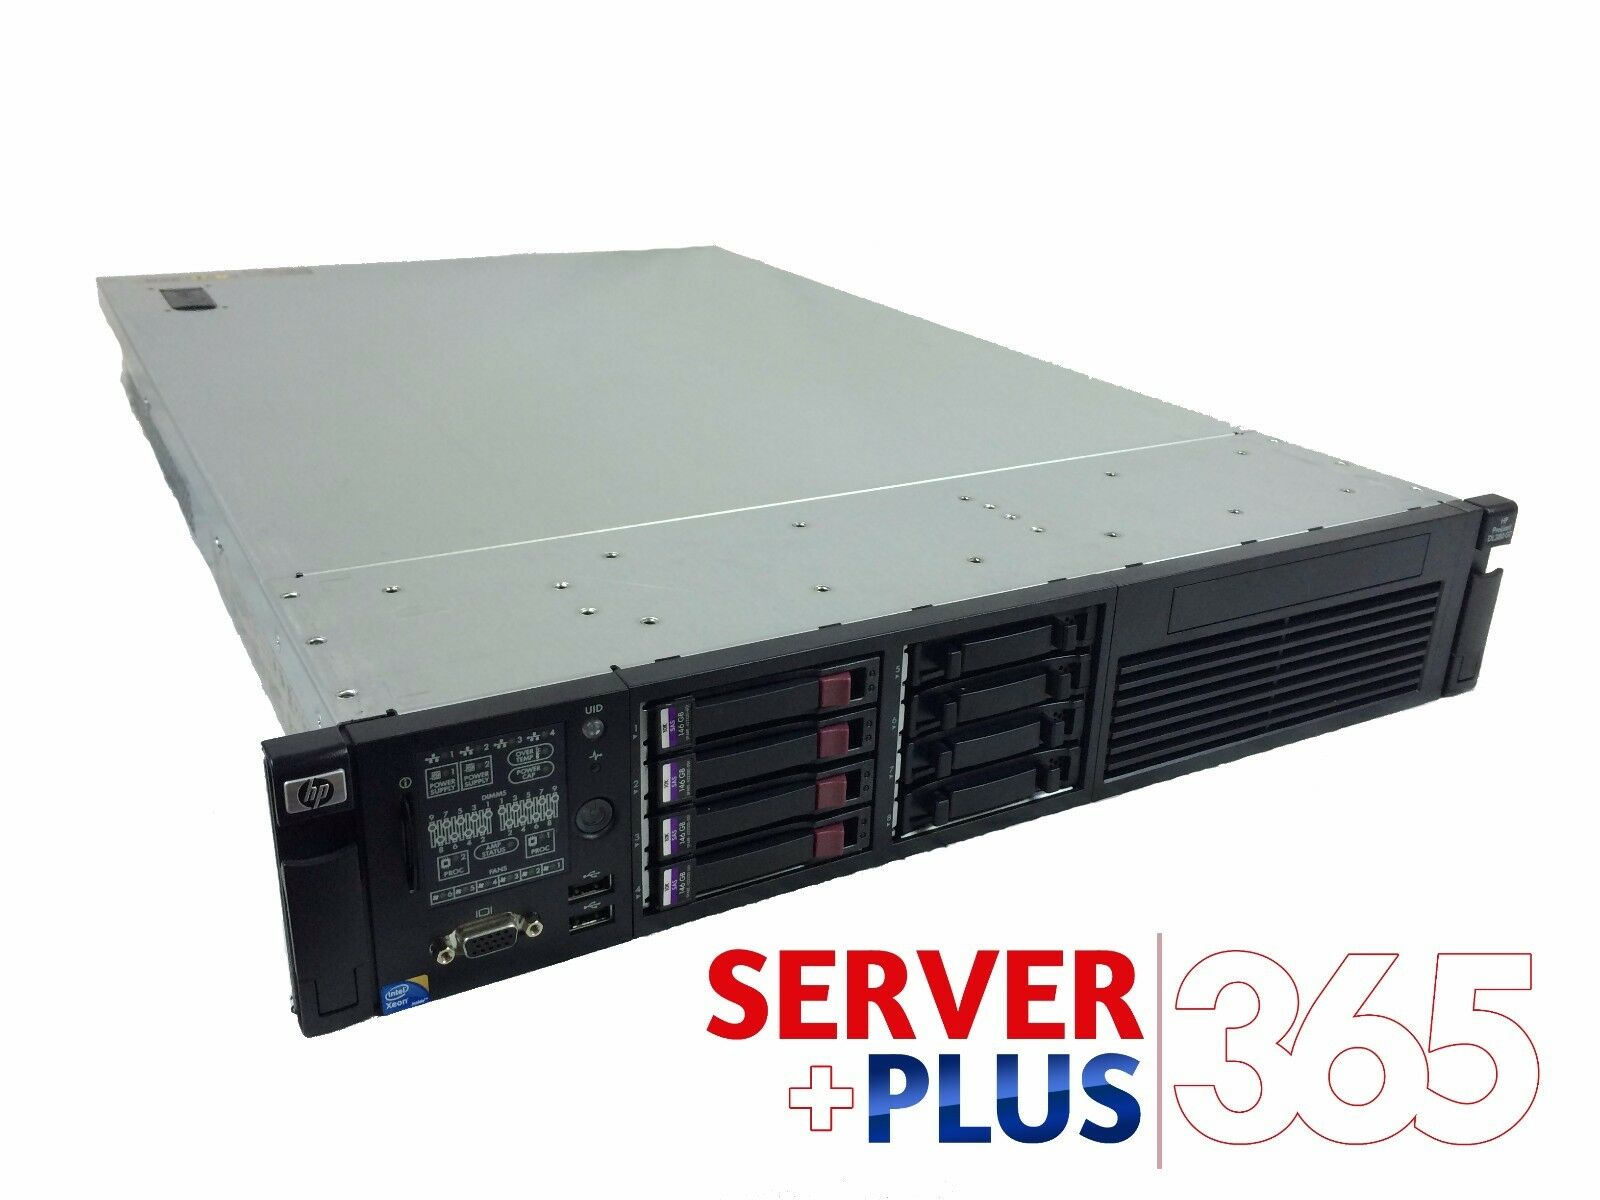 hp proliant dl380 g7 server 2x quadcore 128gb ram 2x 450gb hdd 2x power. Black Bedroom Furniture Sets. Home Design Ideas